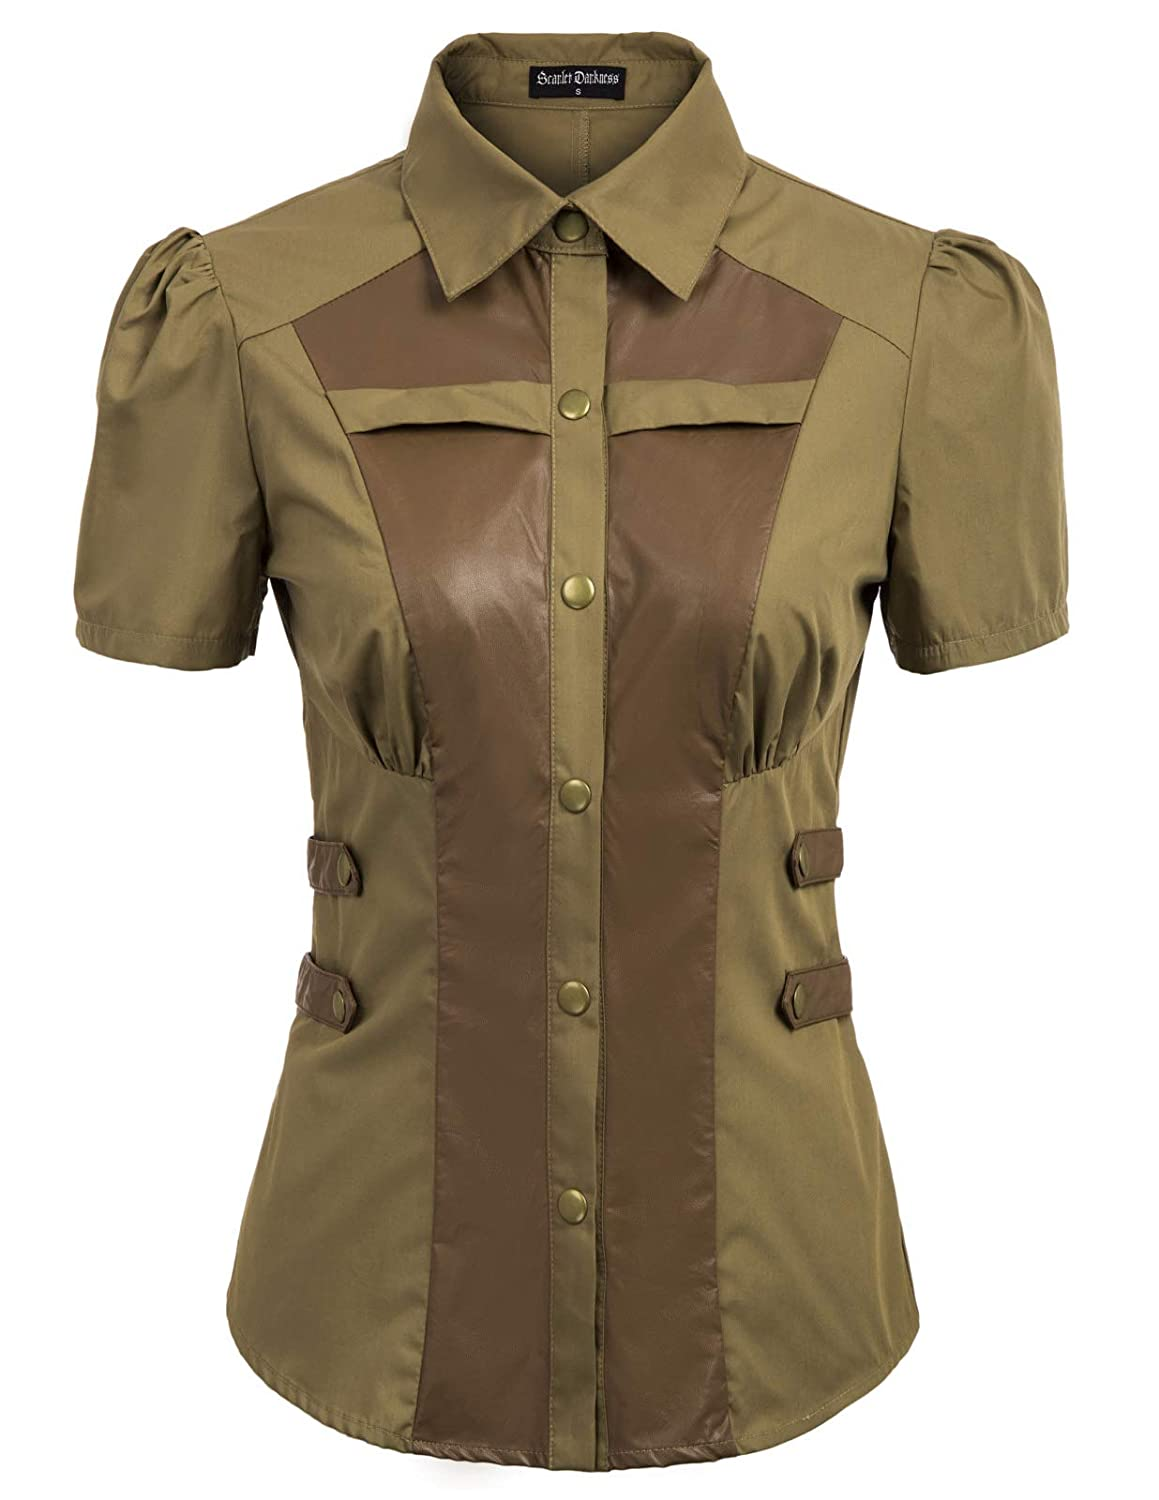 Steampunk Tops | Blouses, Shirts Womens Gothic Punk Shirts Handsome Steampunk Costume Tops $25.99 AT vintagedancer.com